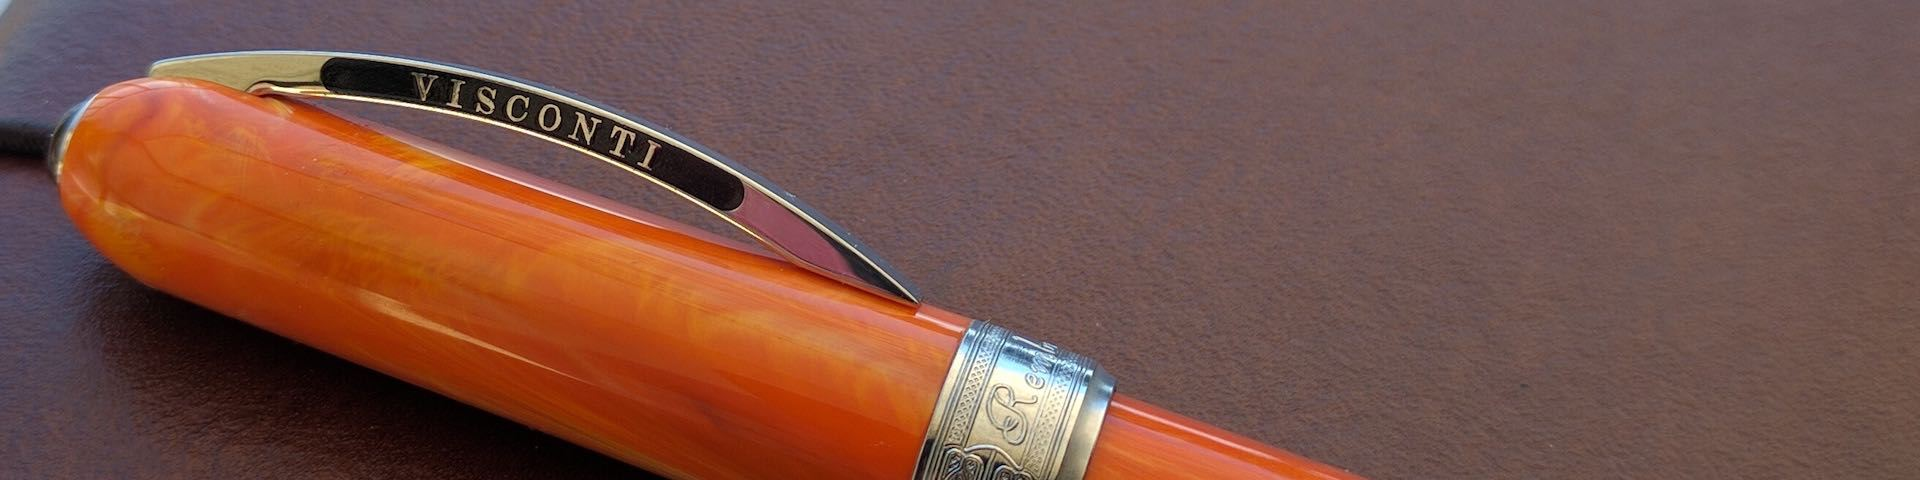 Visconti Rembrandt featured